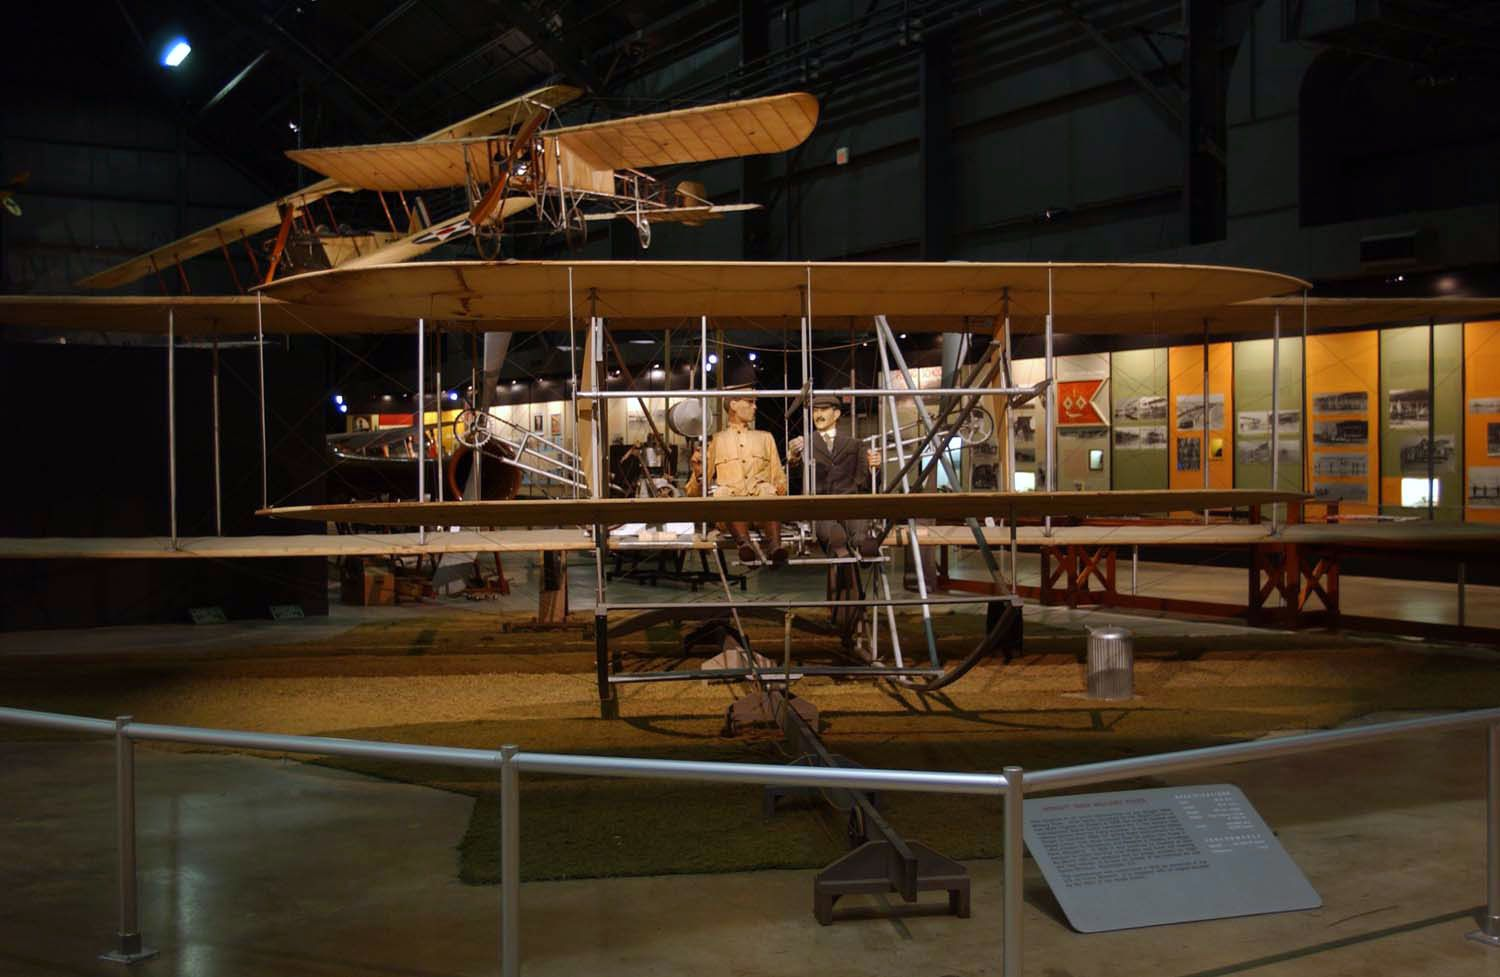 National Air Force Museum, WrightPatterson AFB, Dayton